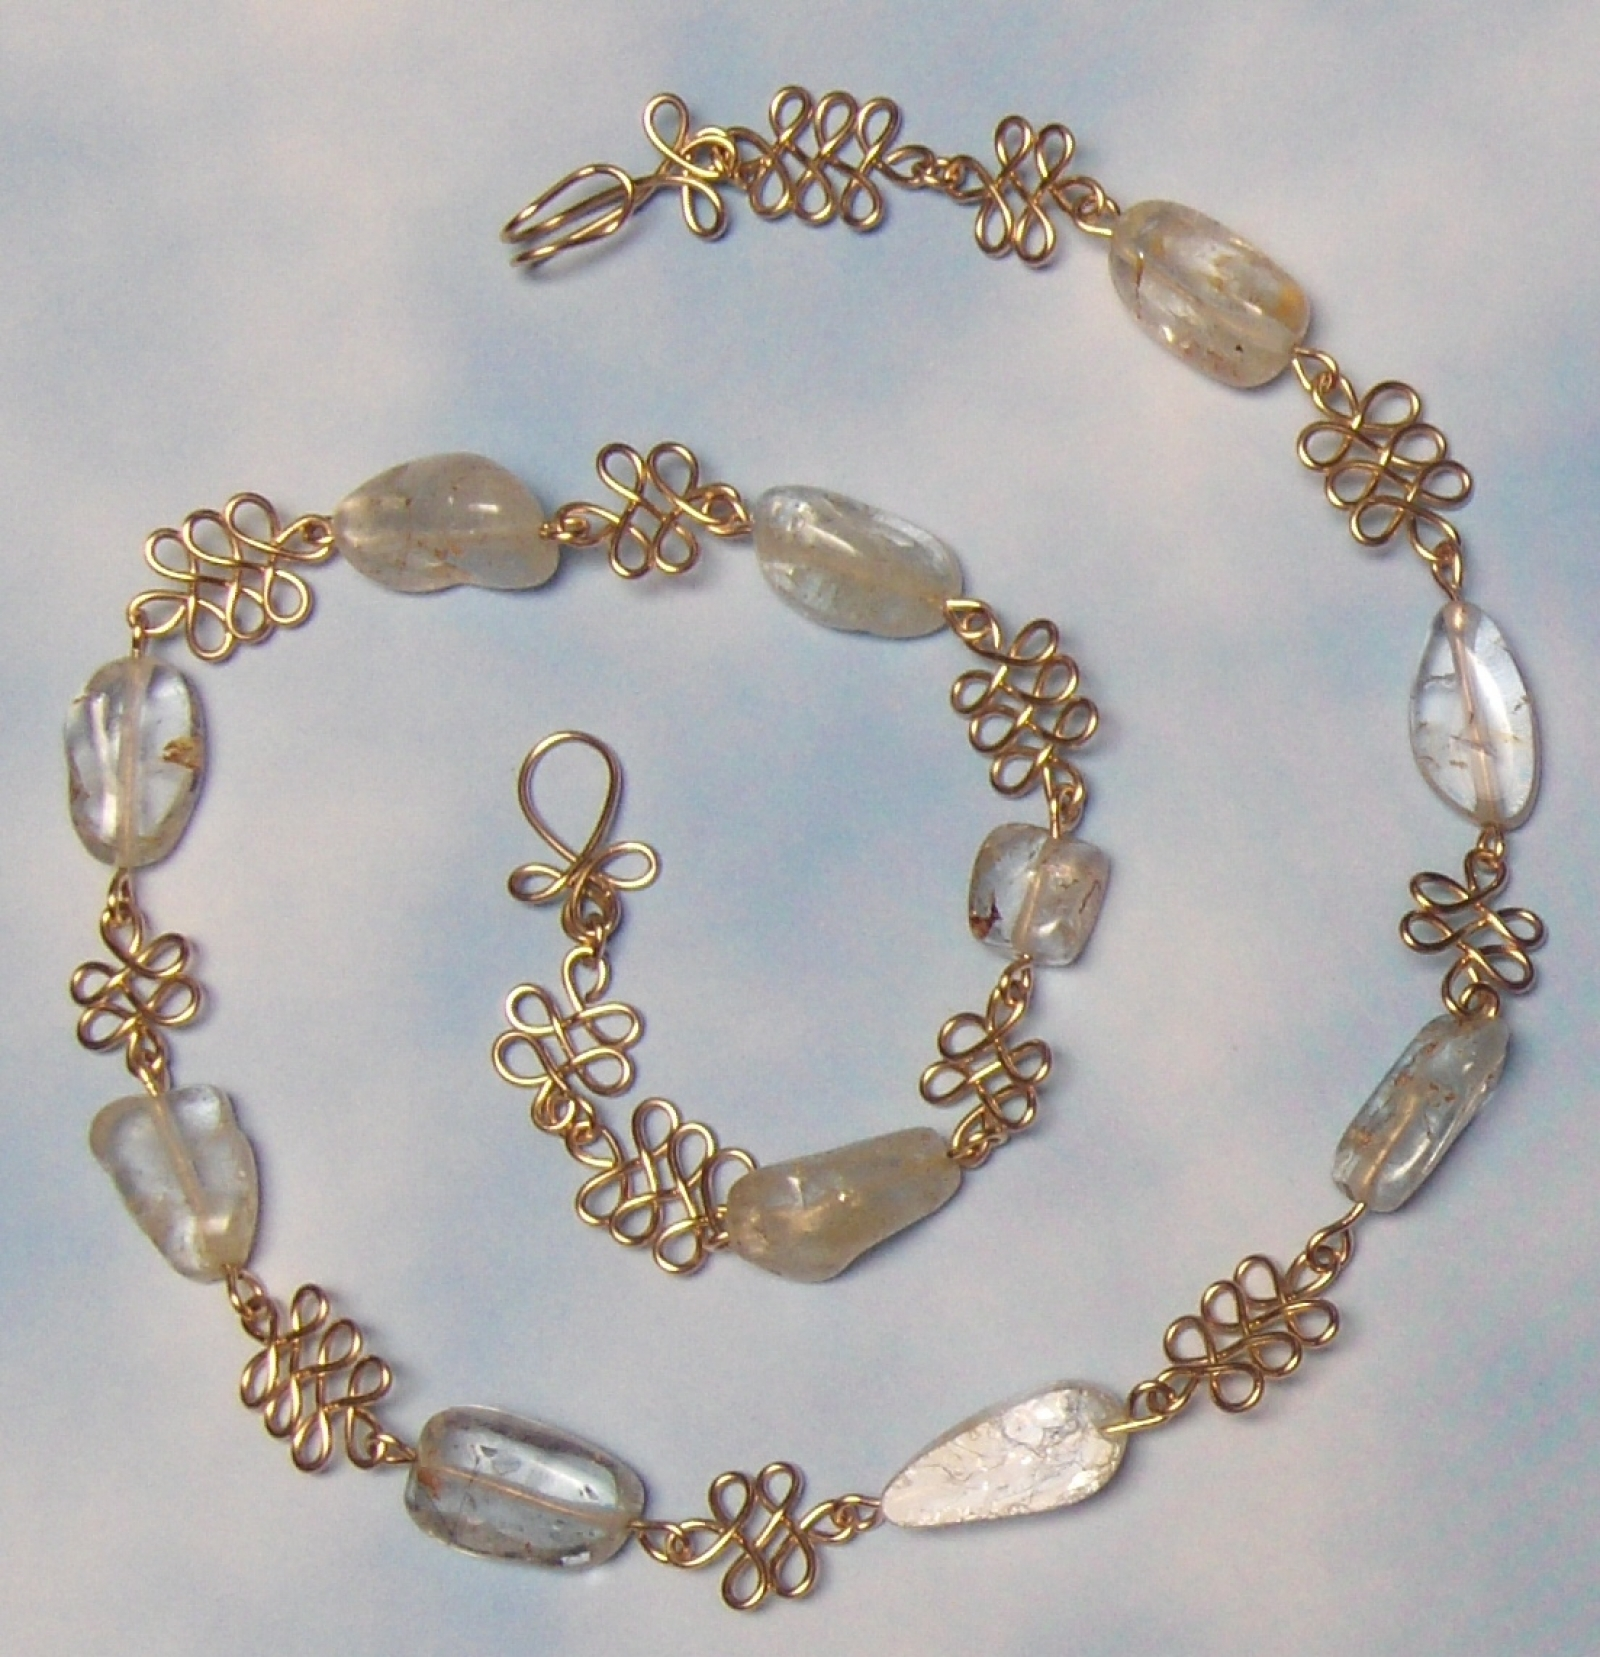 White Topaz Nuggets with Gold-Filled Handcrafted Wire Link Necklace ...